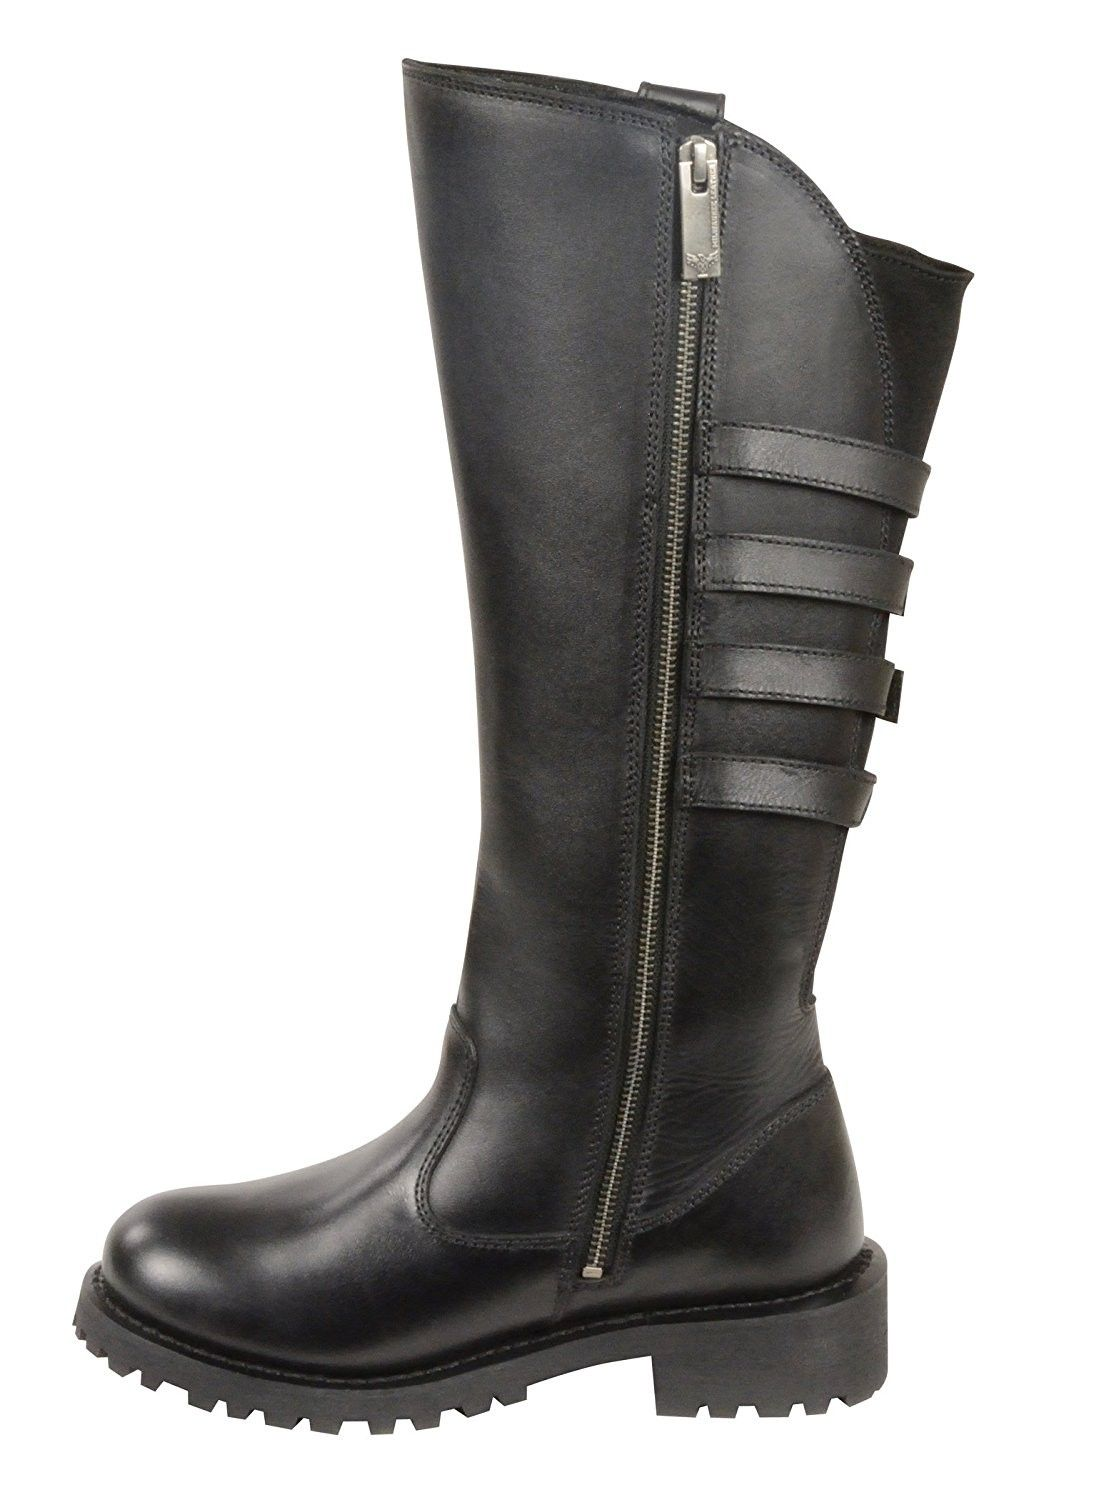 Oil Resistant Gloves >> Milwaukee Leather Women's Tall Boots with Buckle Detail